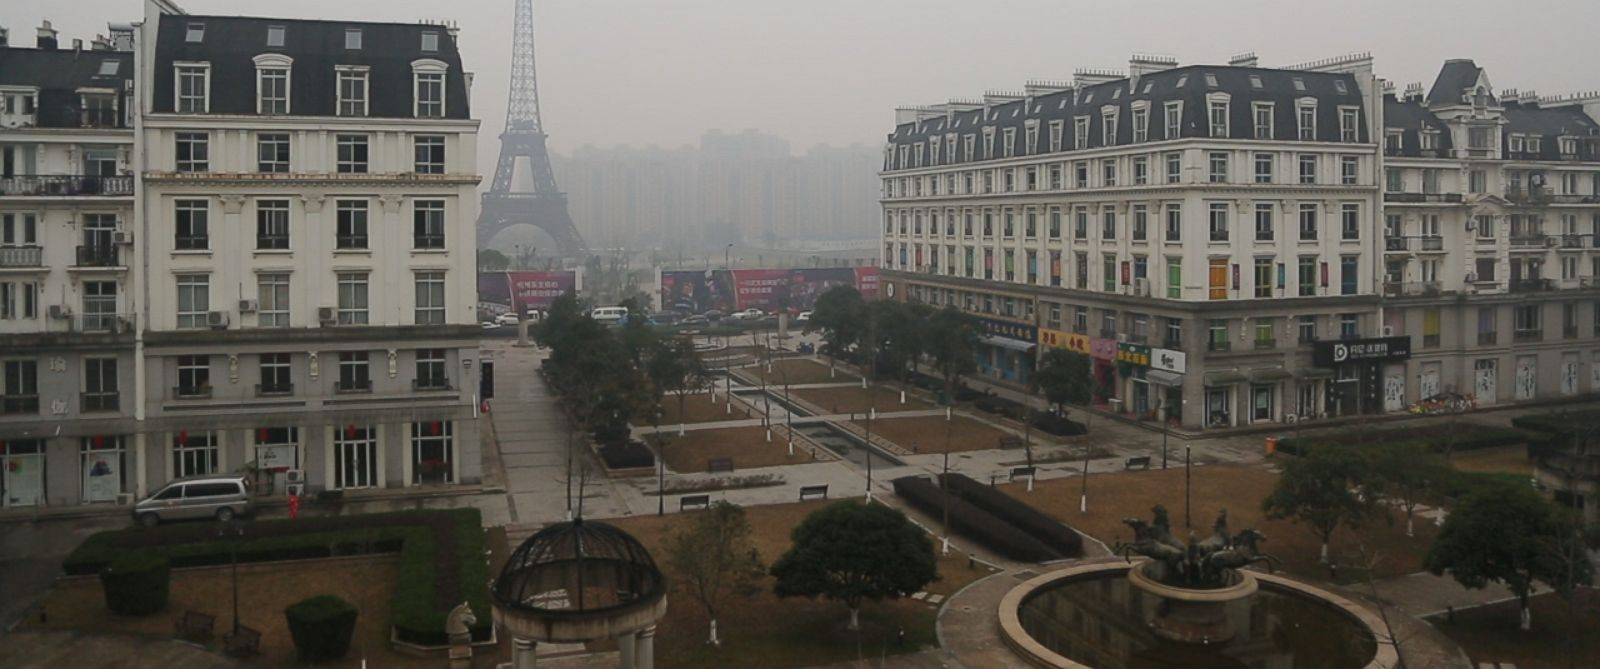 ABC News VR Virtual Reality News Stories ABC News - Tianducheng a ghostly abandoned clone of paris in the middle of china